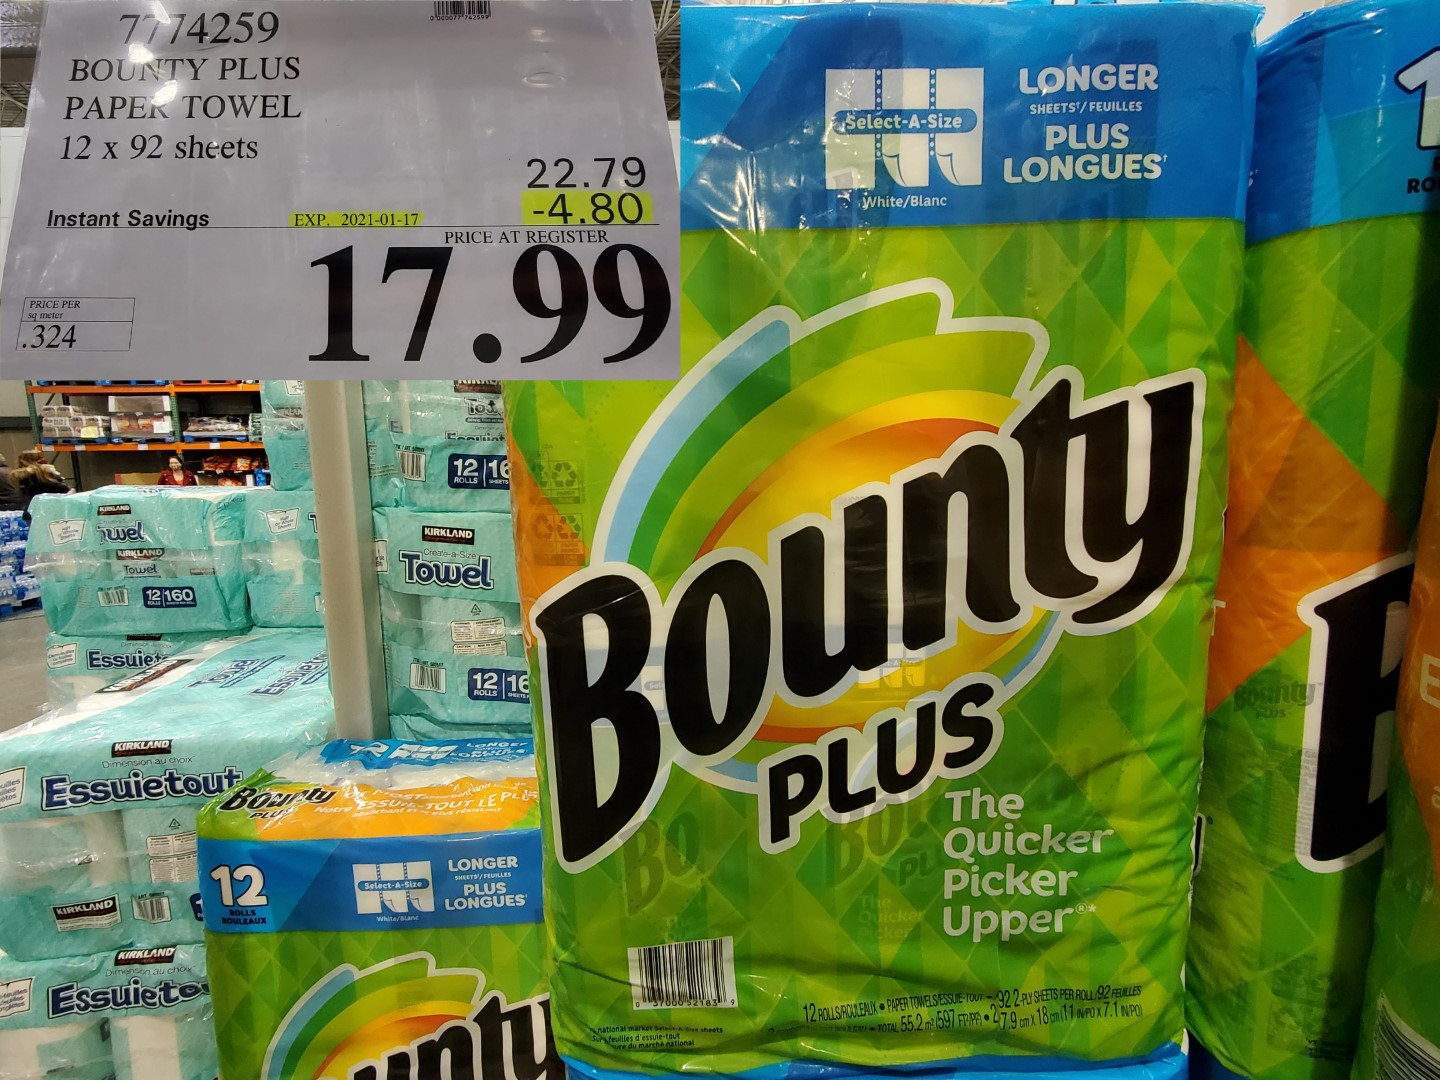 Costco Sale bounty plus paper towel